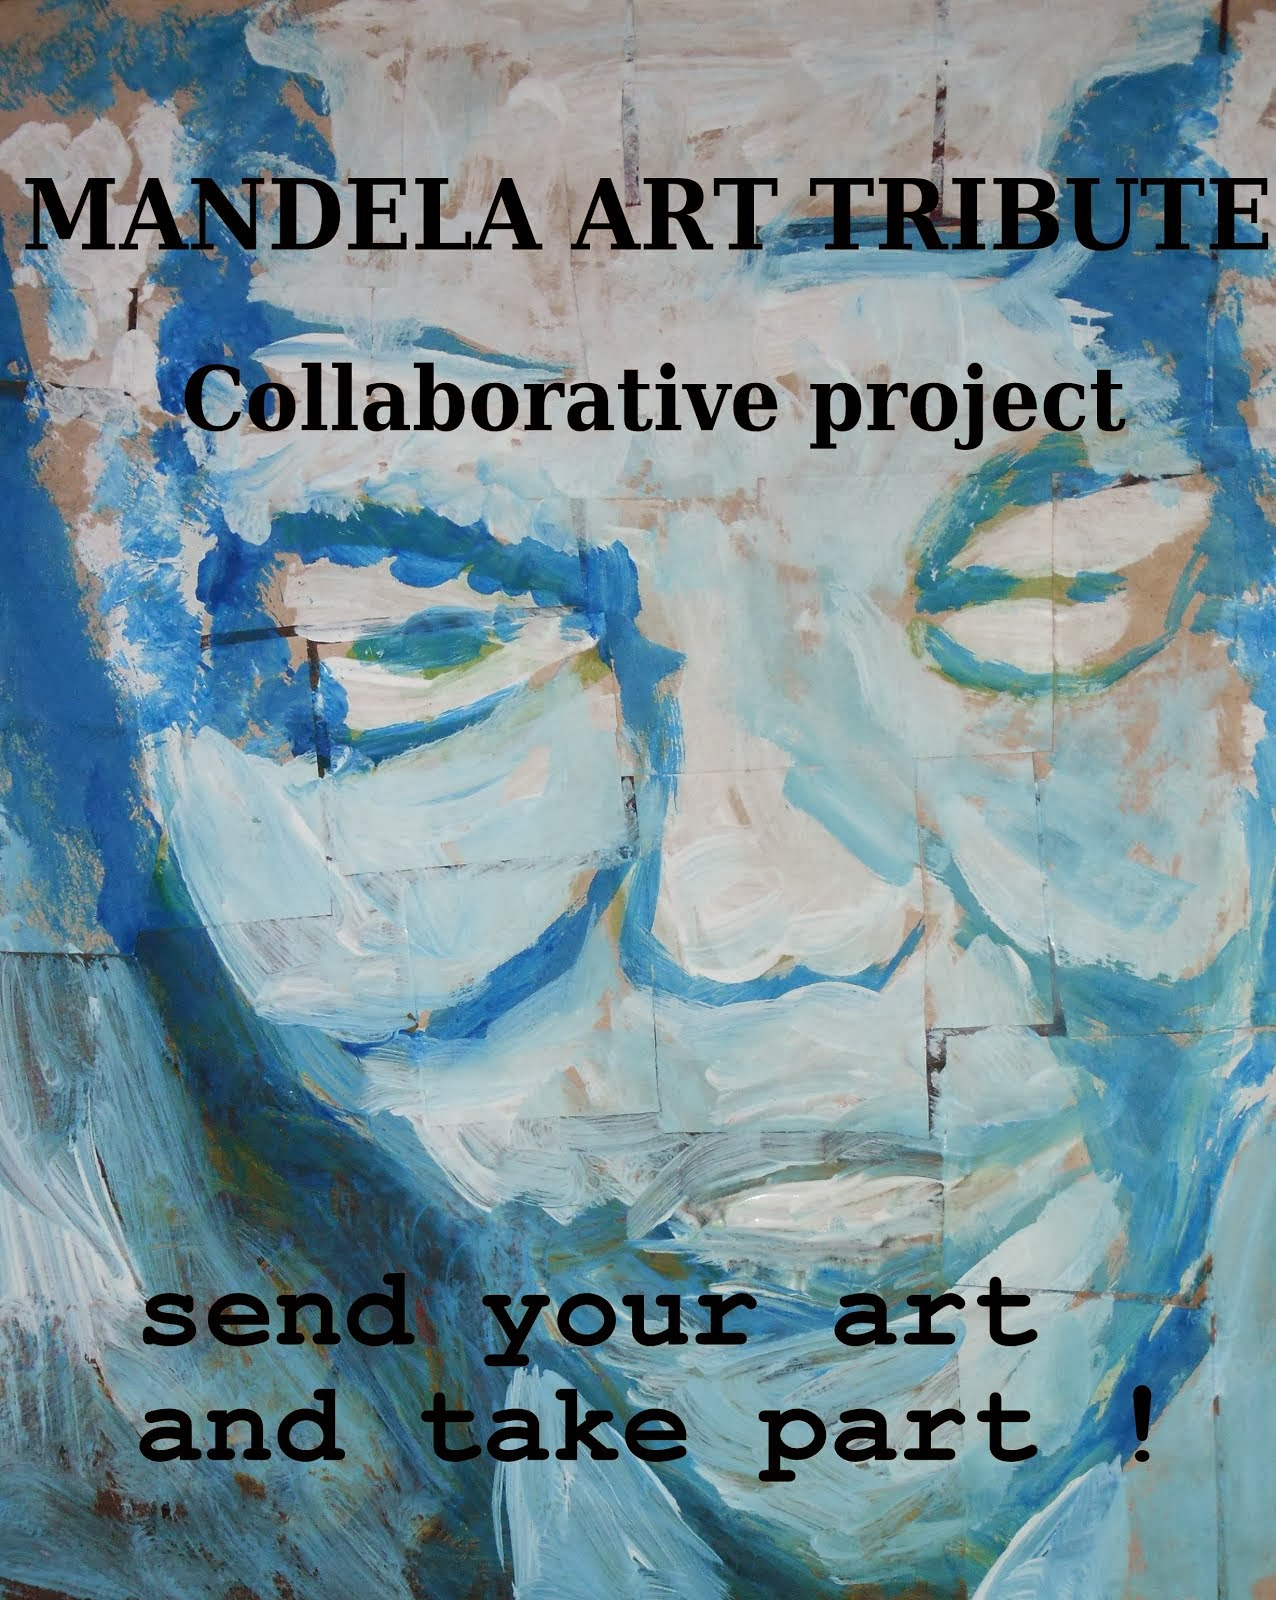 Mandela Art Tribute